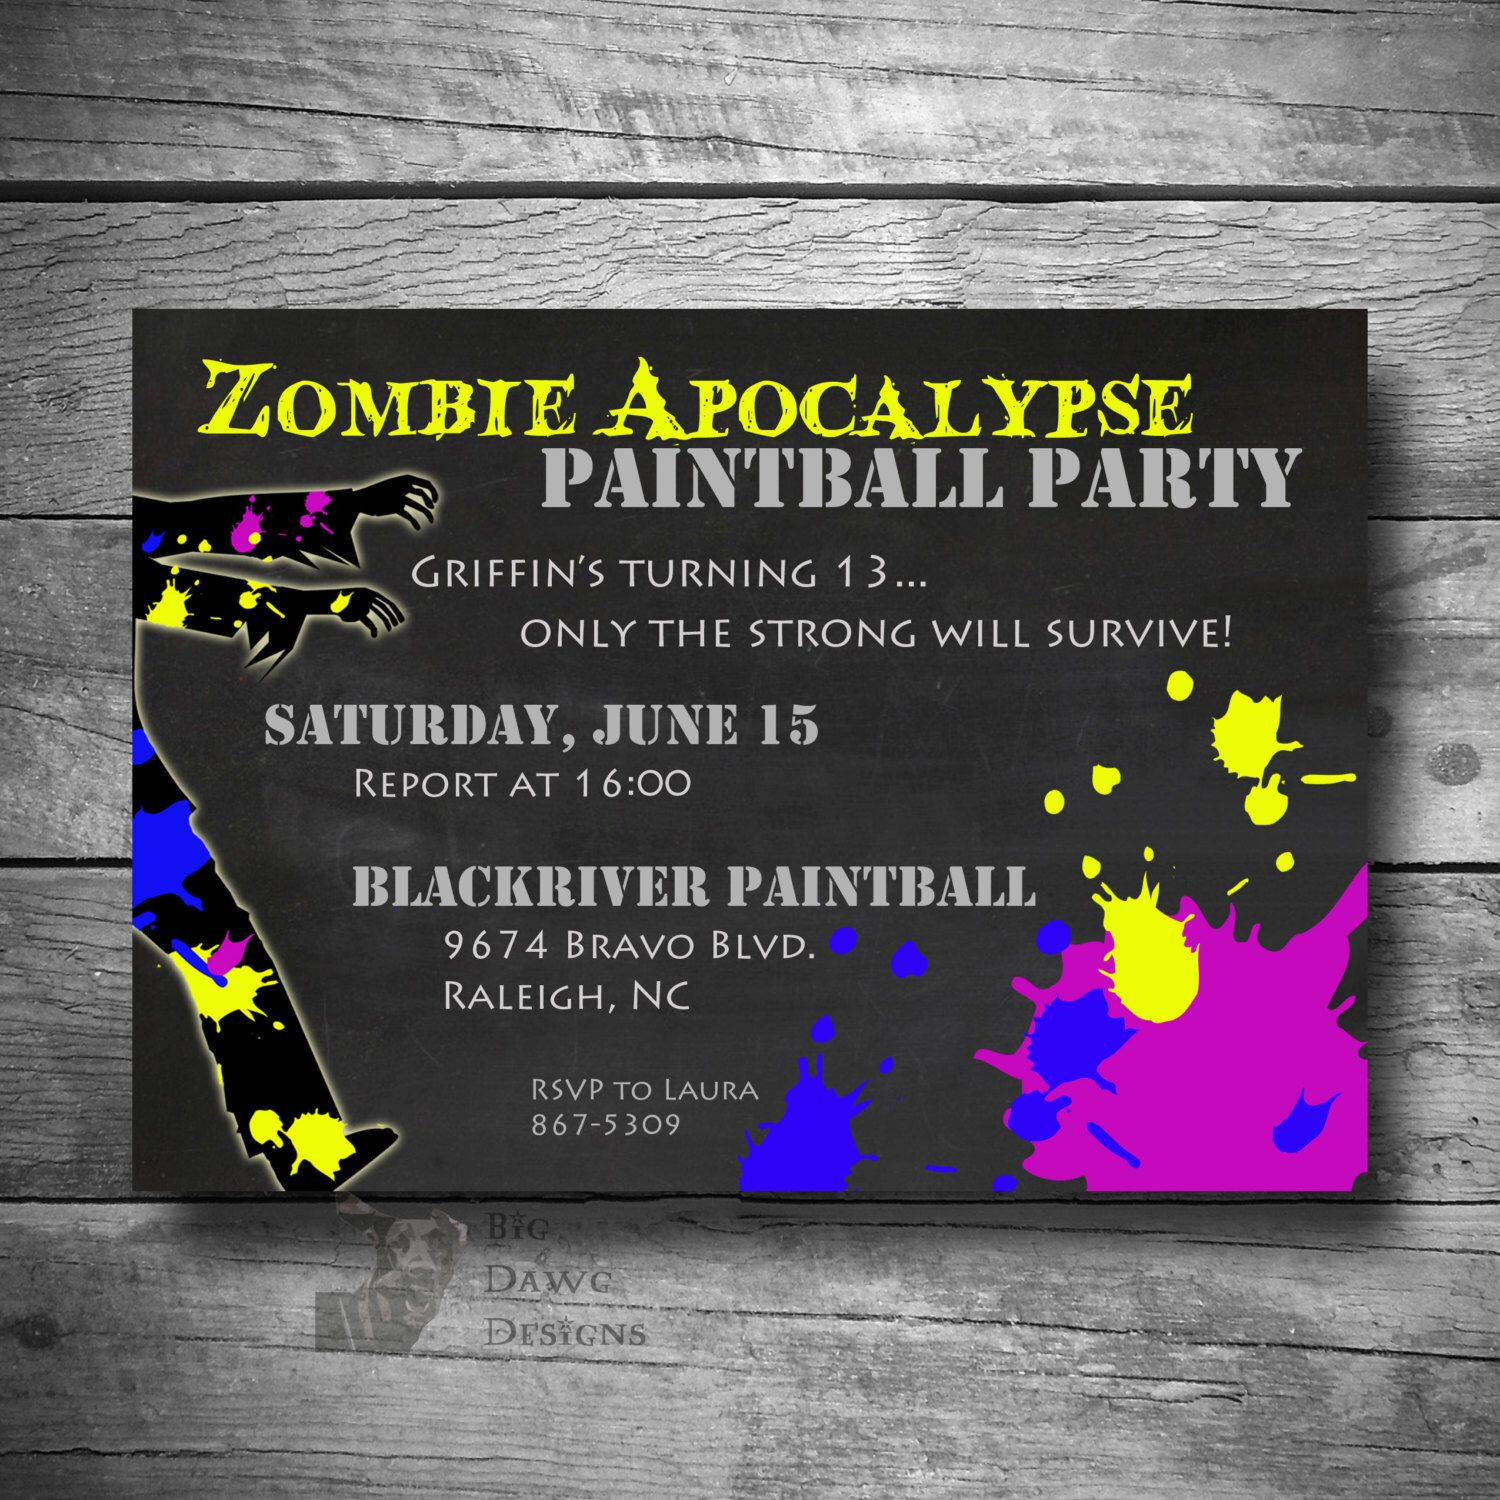 Paintball Party Invitation, Zombie Apocalypse Paintball Party Invite ...